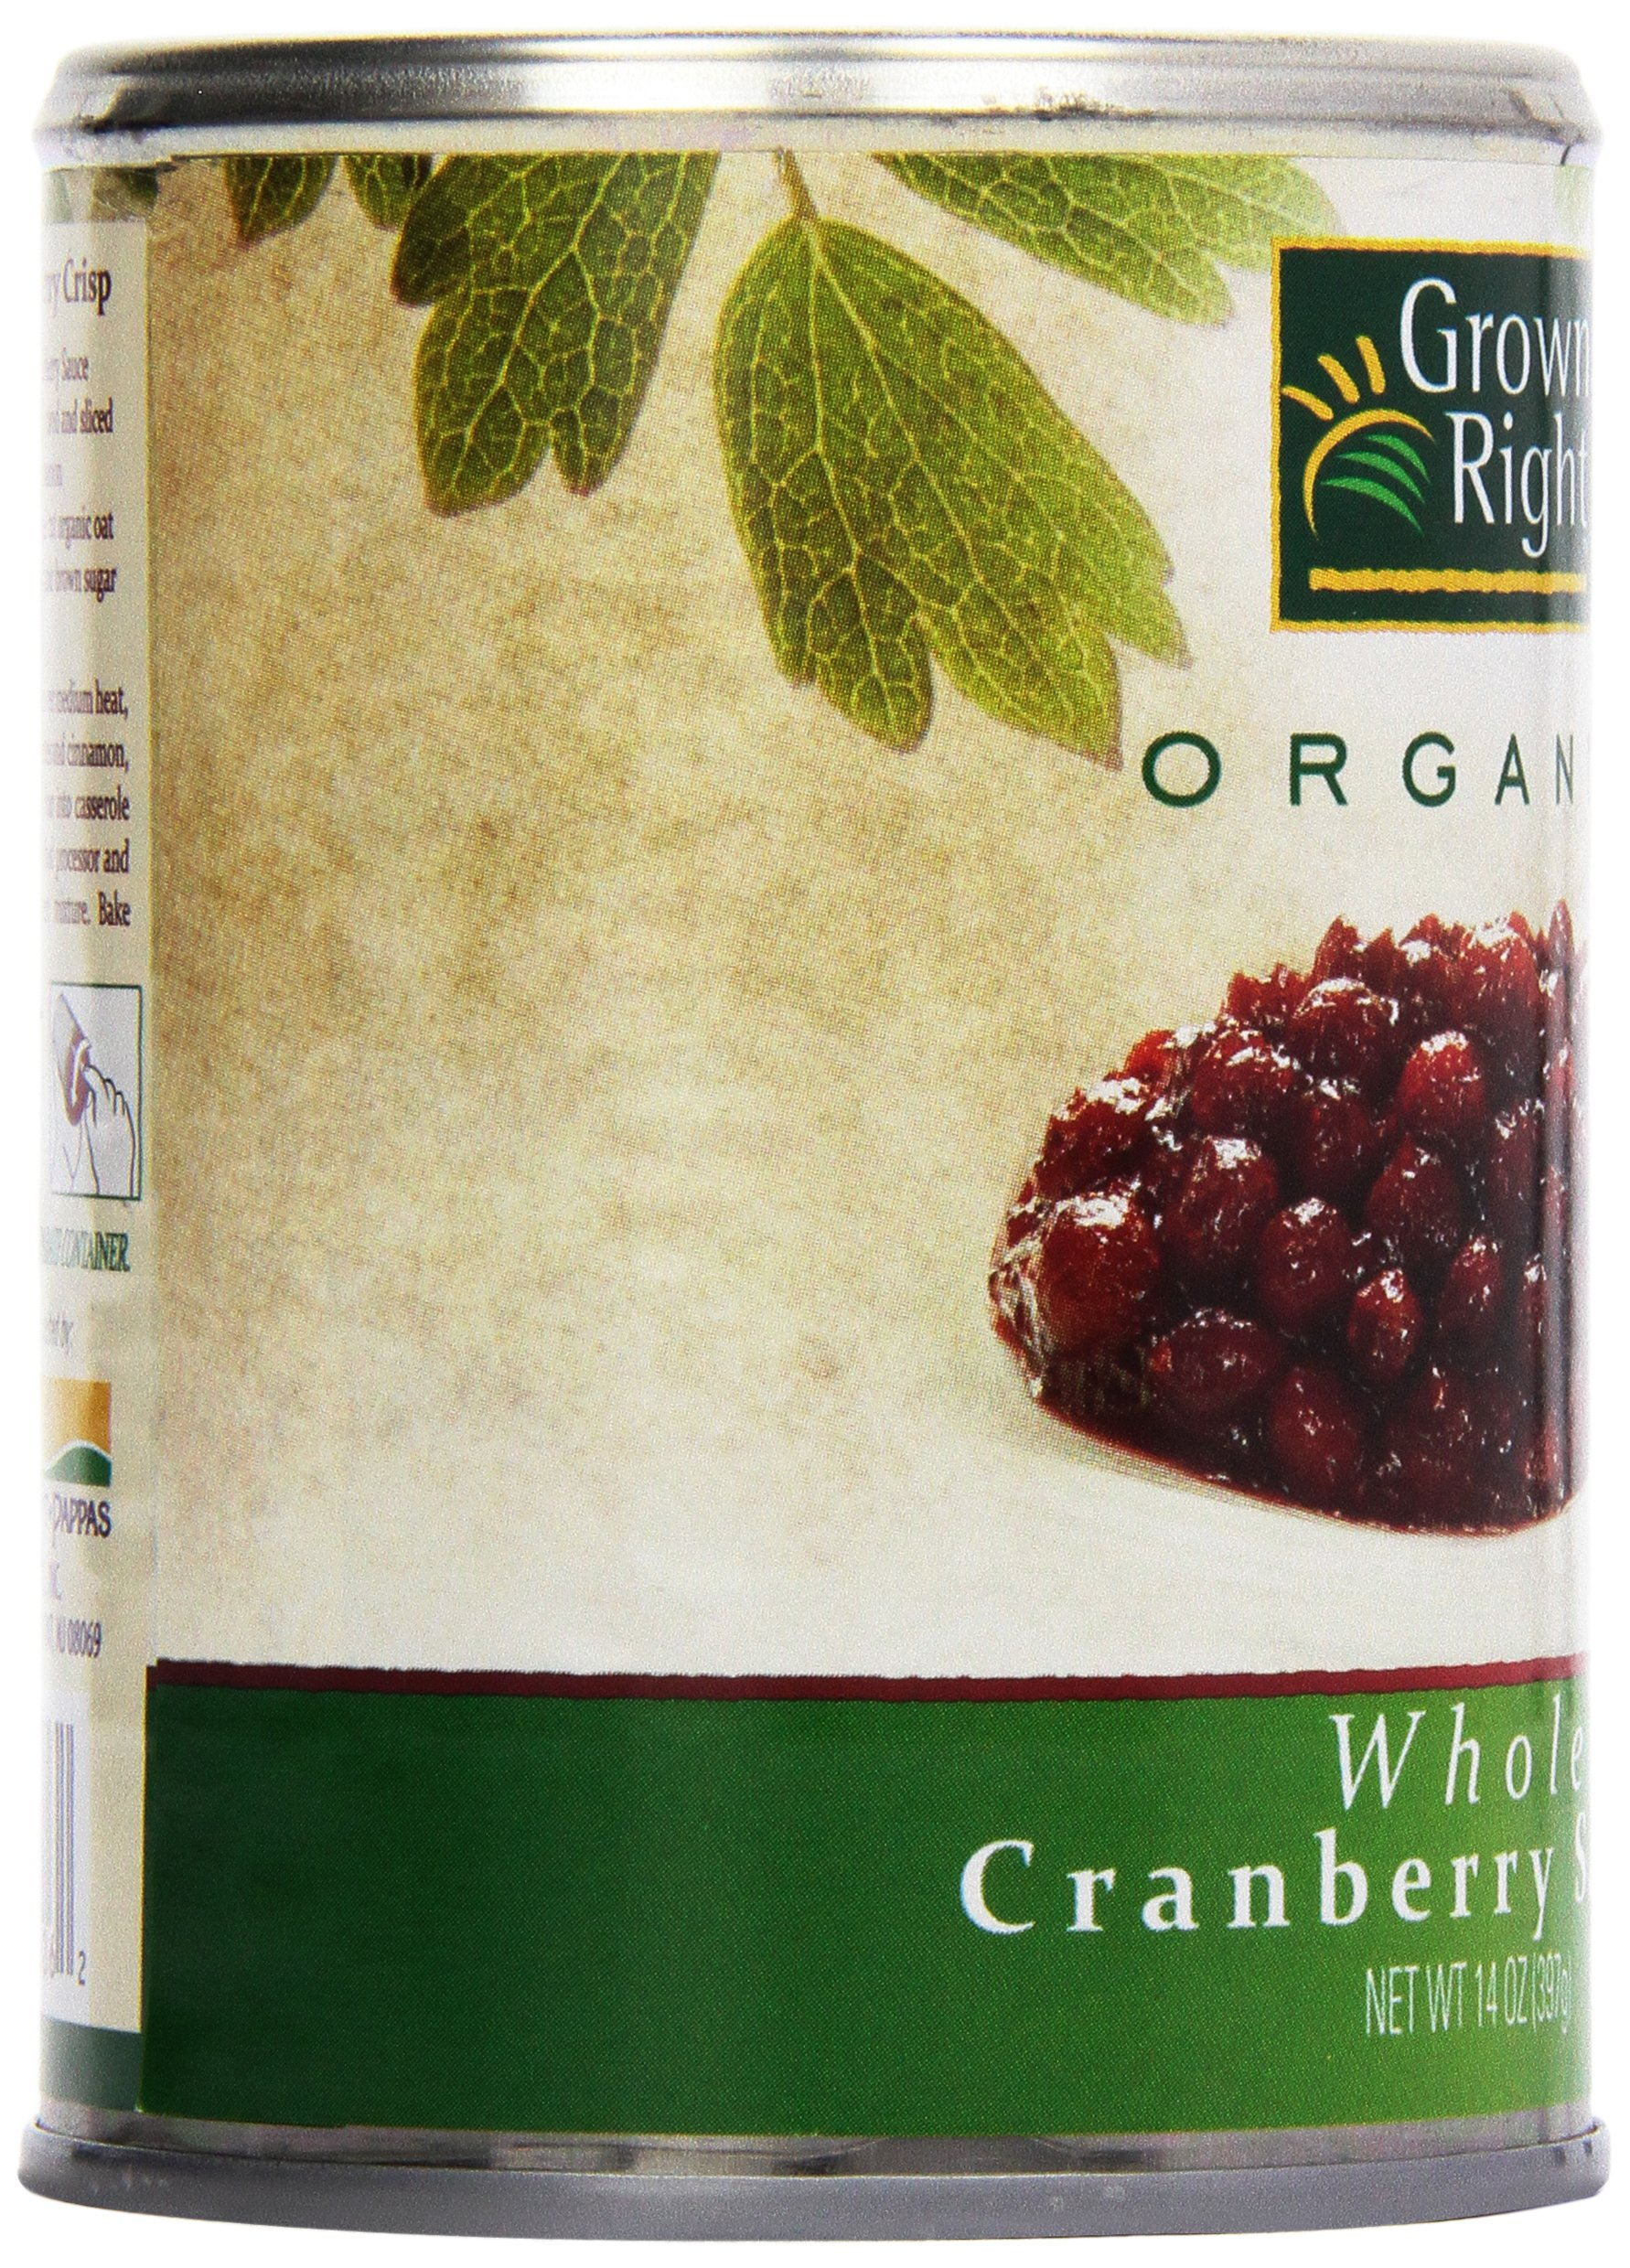 Grown Right Organic Whole Cranberry Sauce, 14 oz by Grown Right (Image #8)